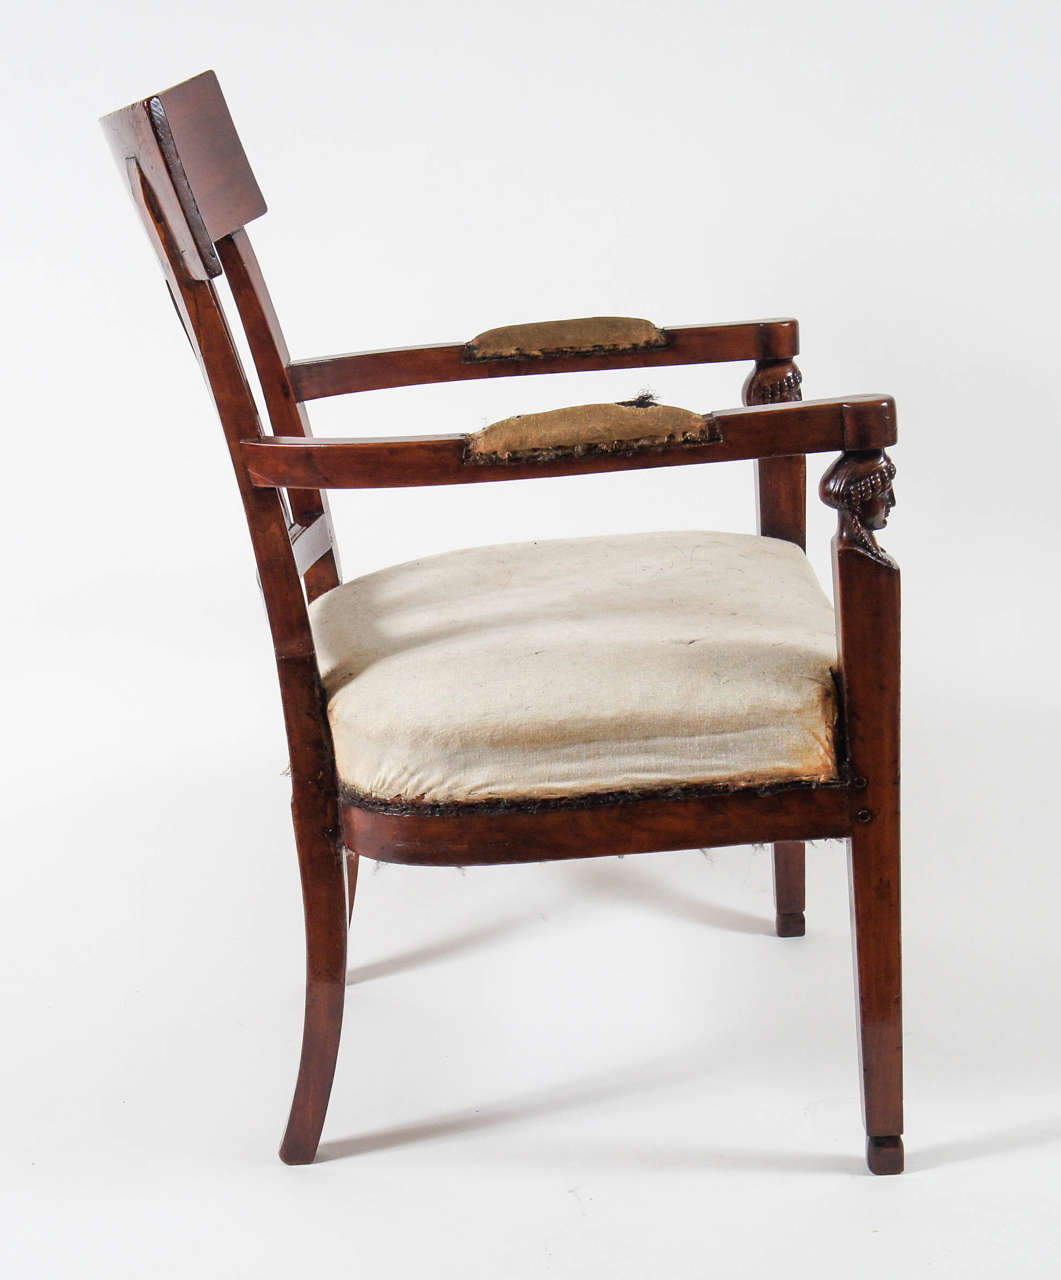 Directoire Neoclassical Consulate Fauteuil or Armchair, Italy, circa 1800 For Sale